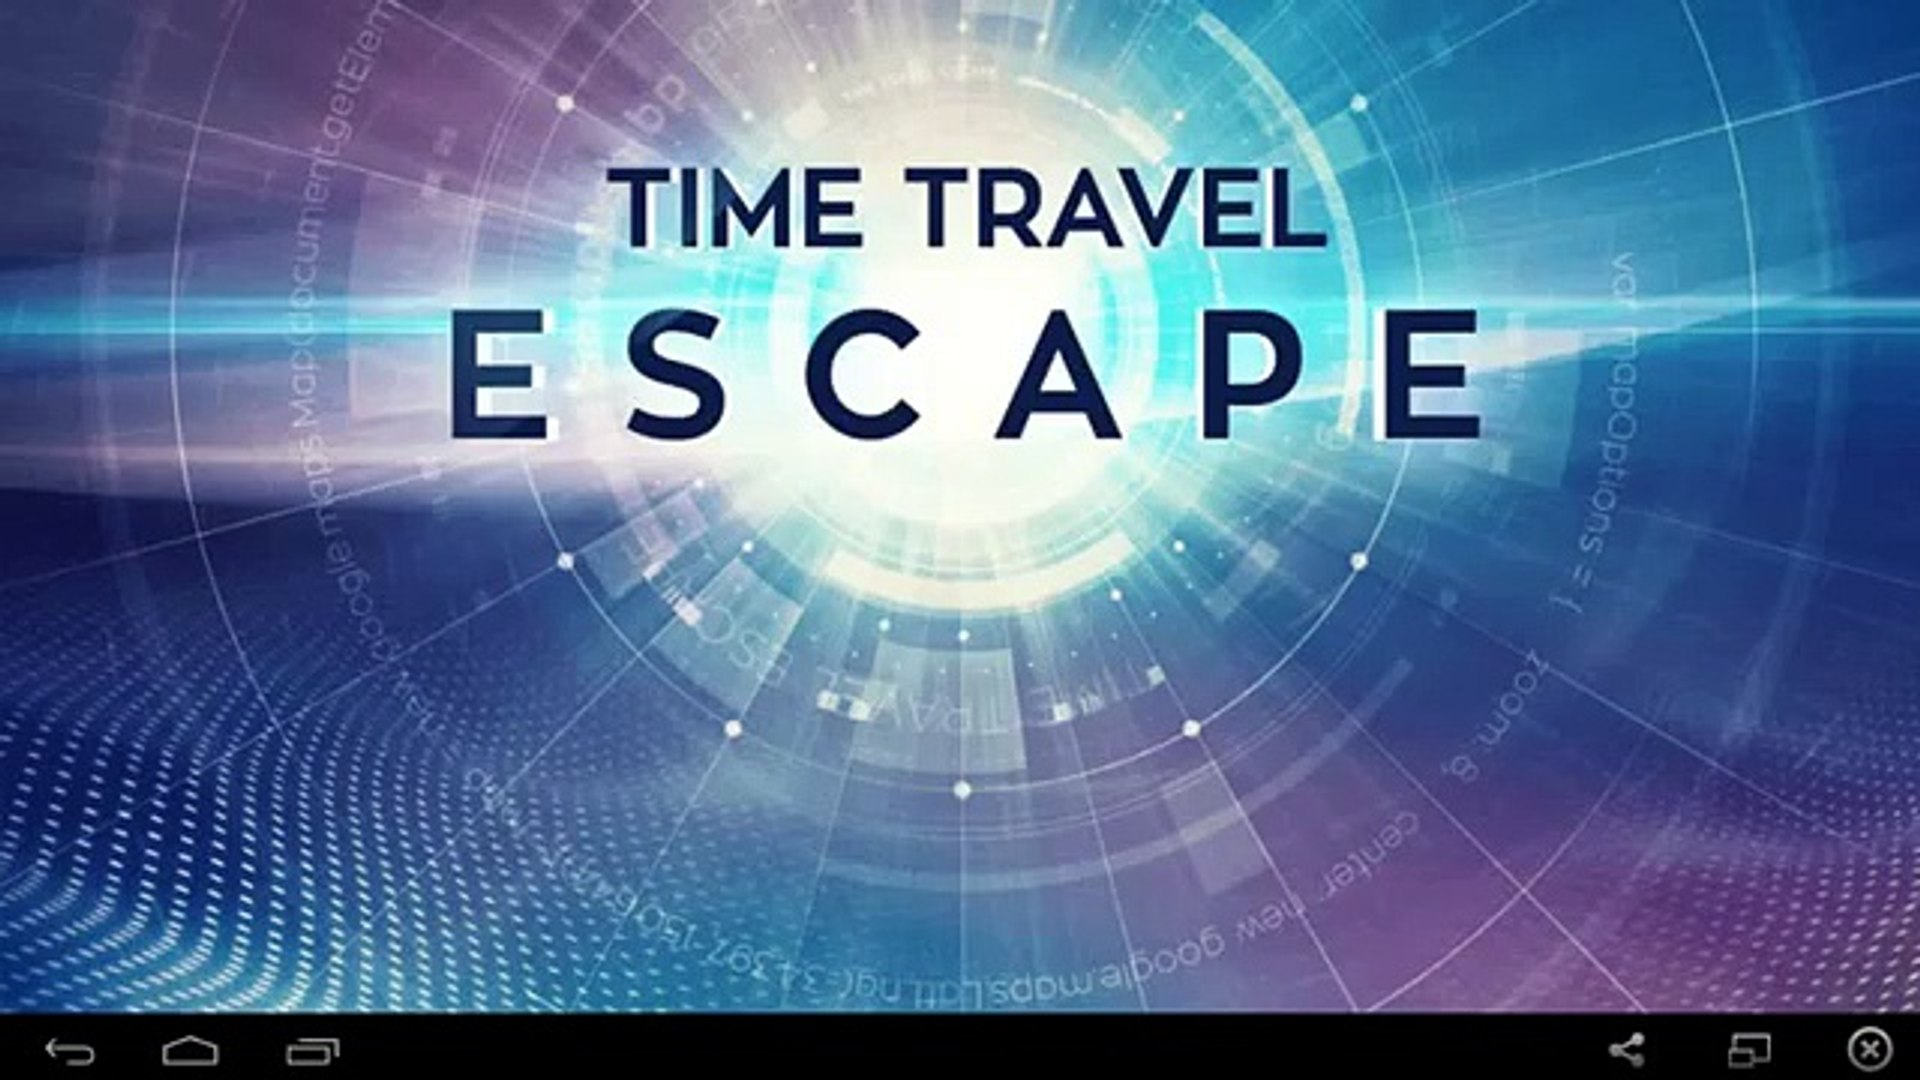 Time Travel Escape - for Android GamePlay